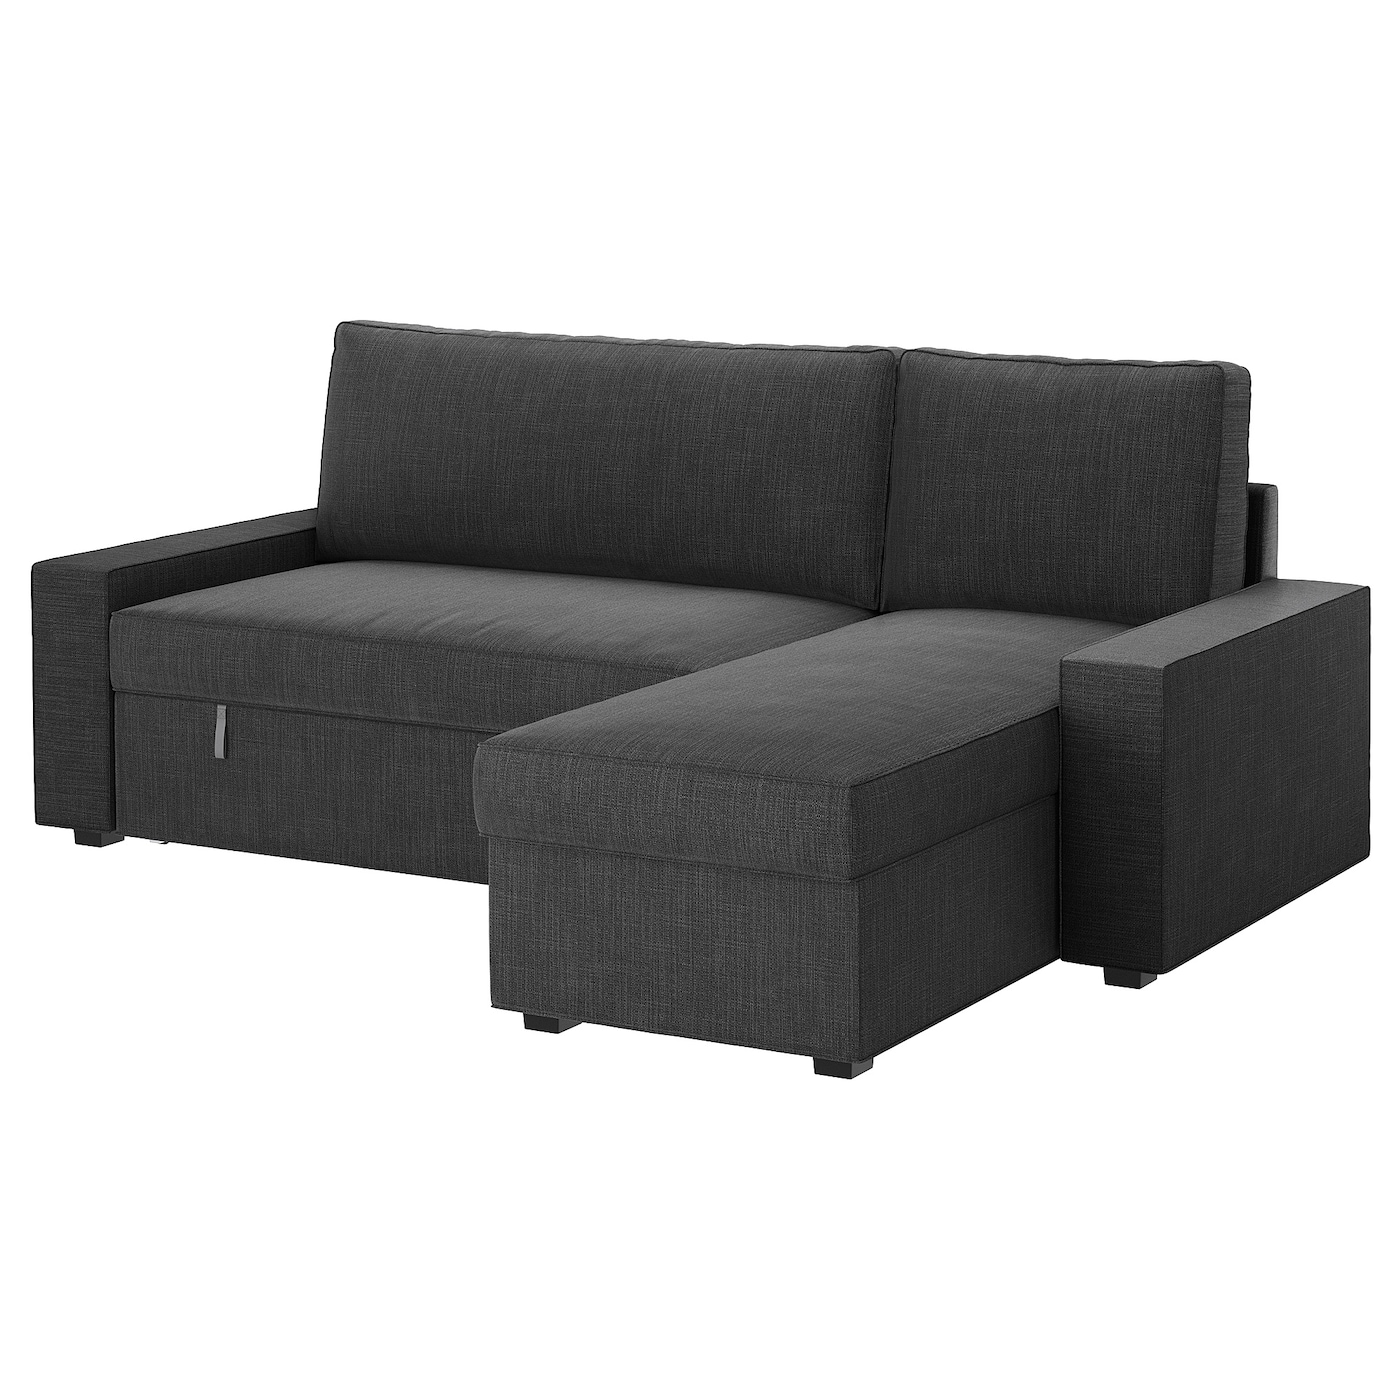 Vilasund sofa bed with chaise longue hillared anthracite for Catalogos de sofas chaise longue